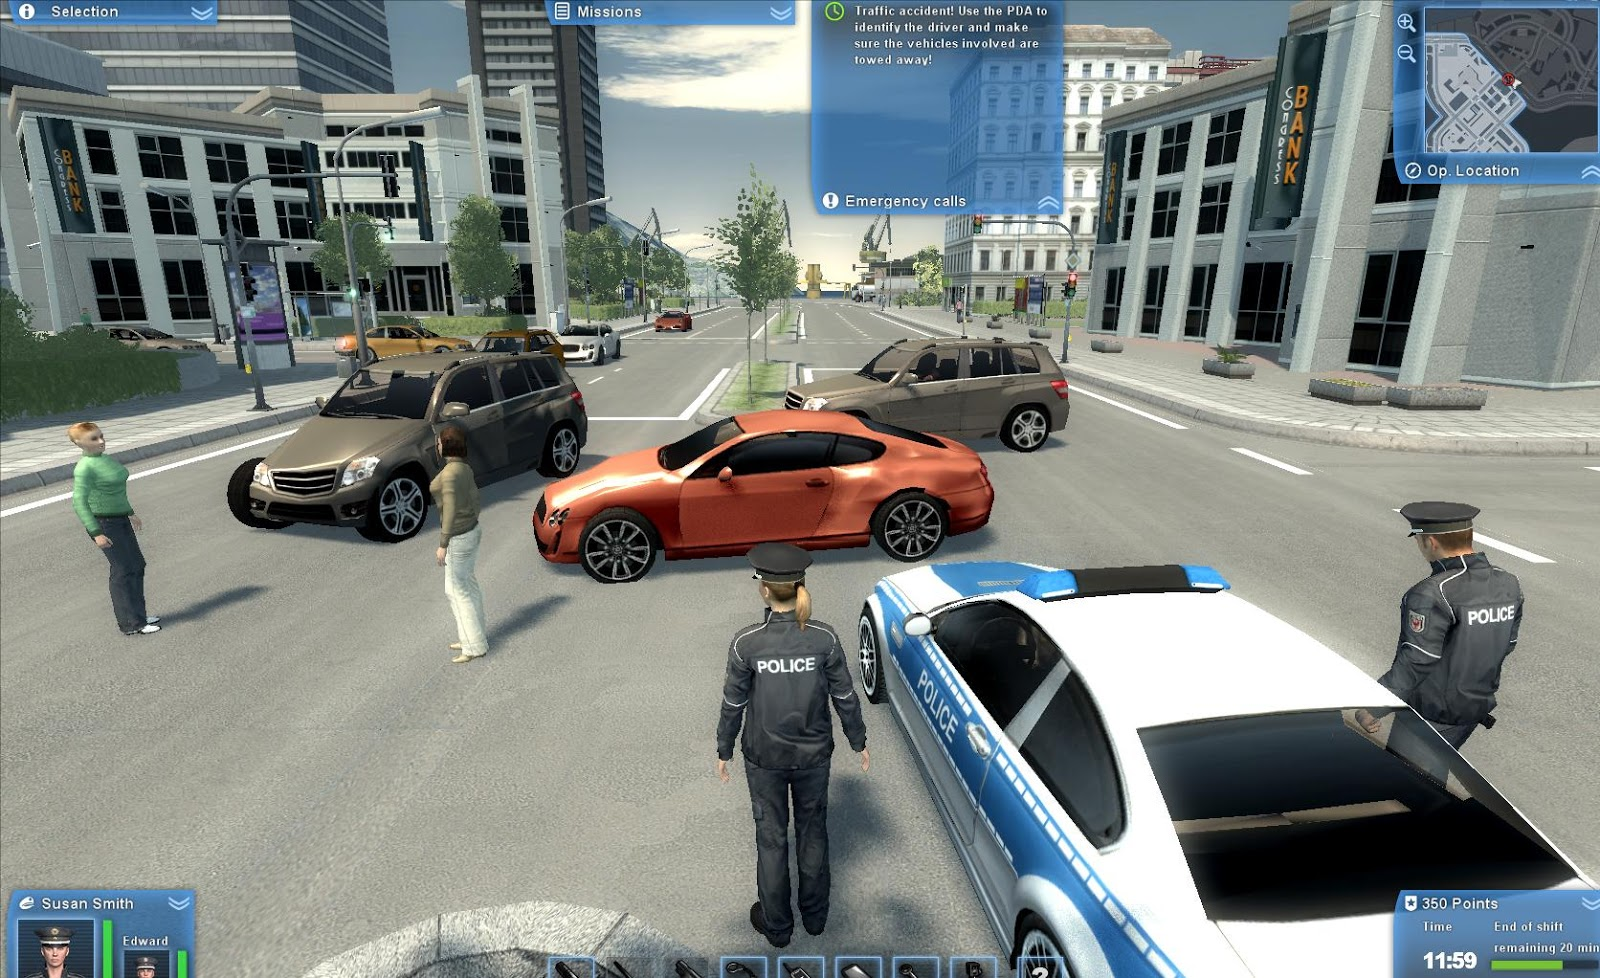 Download Free Games Compressed For Pc: police simulator ...